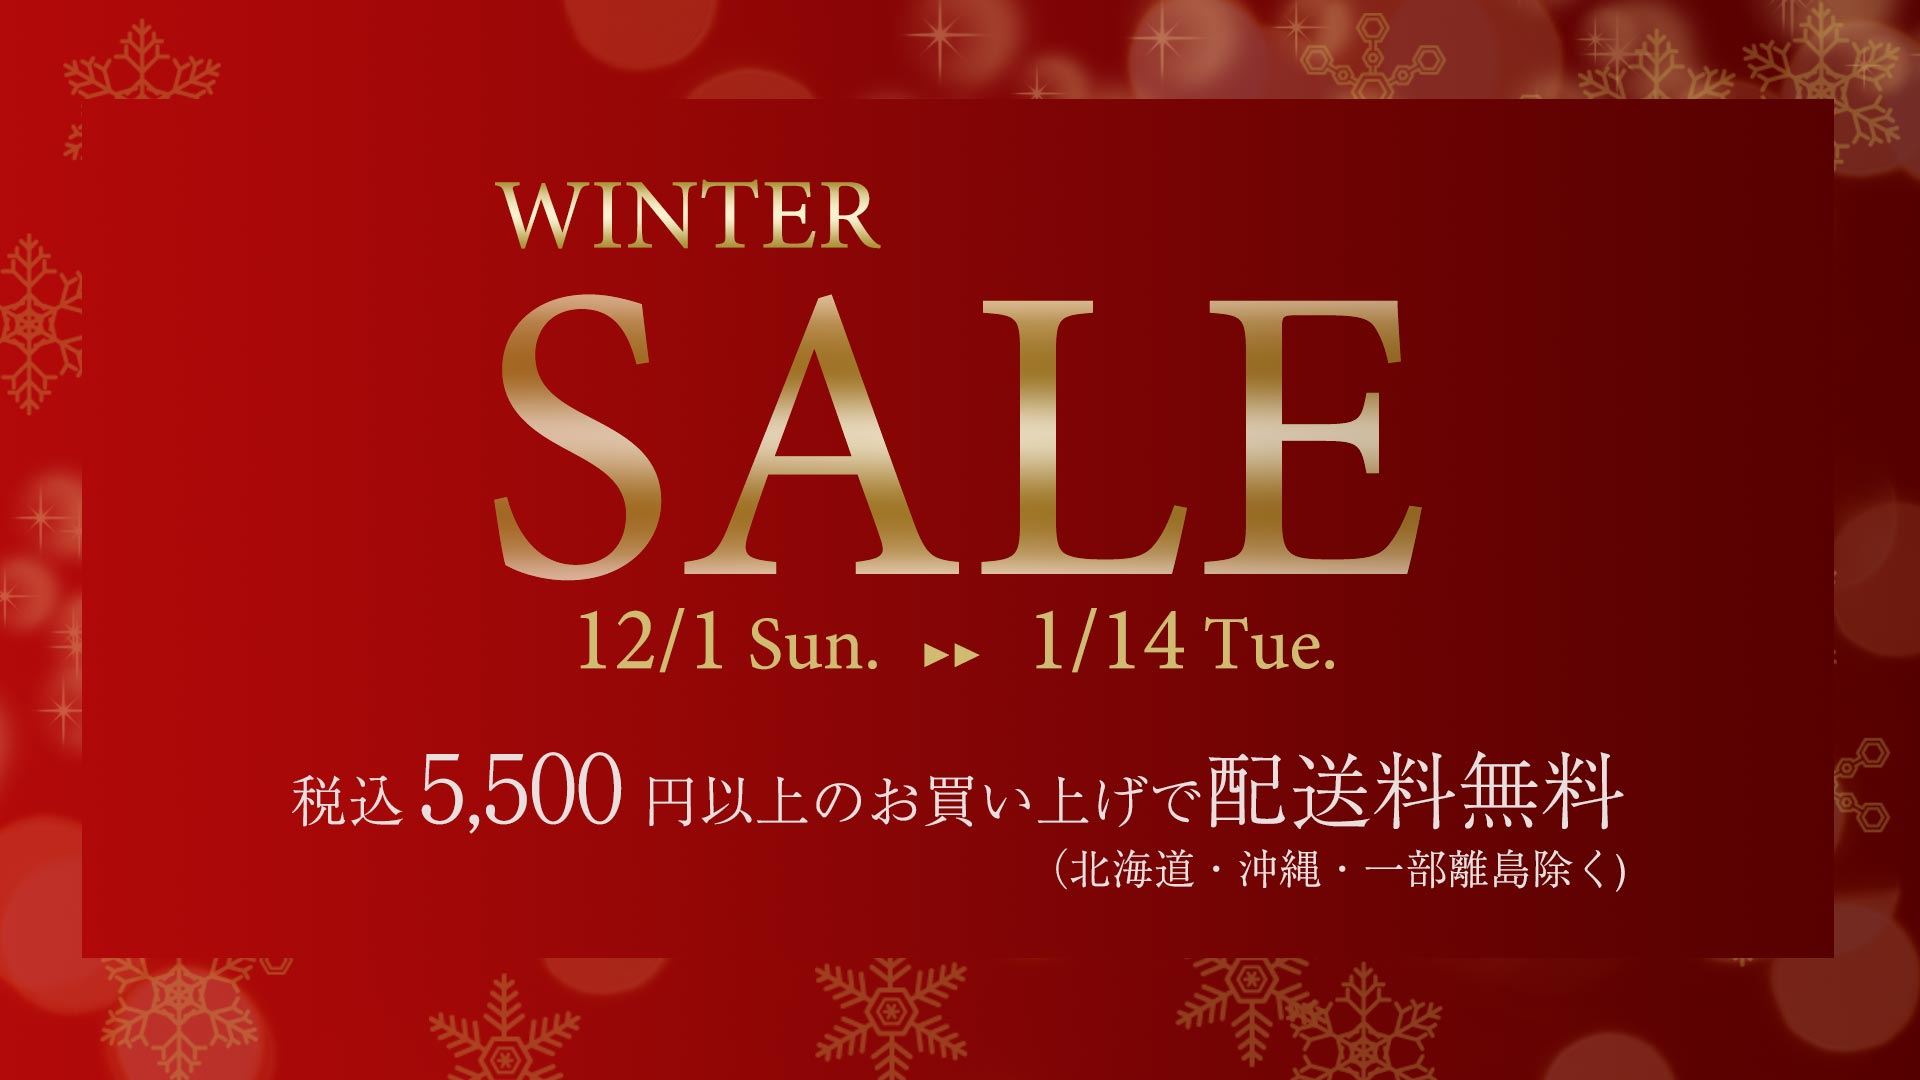 Winter-sale2019